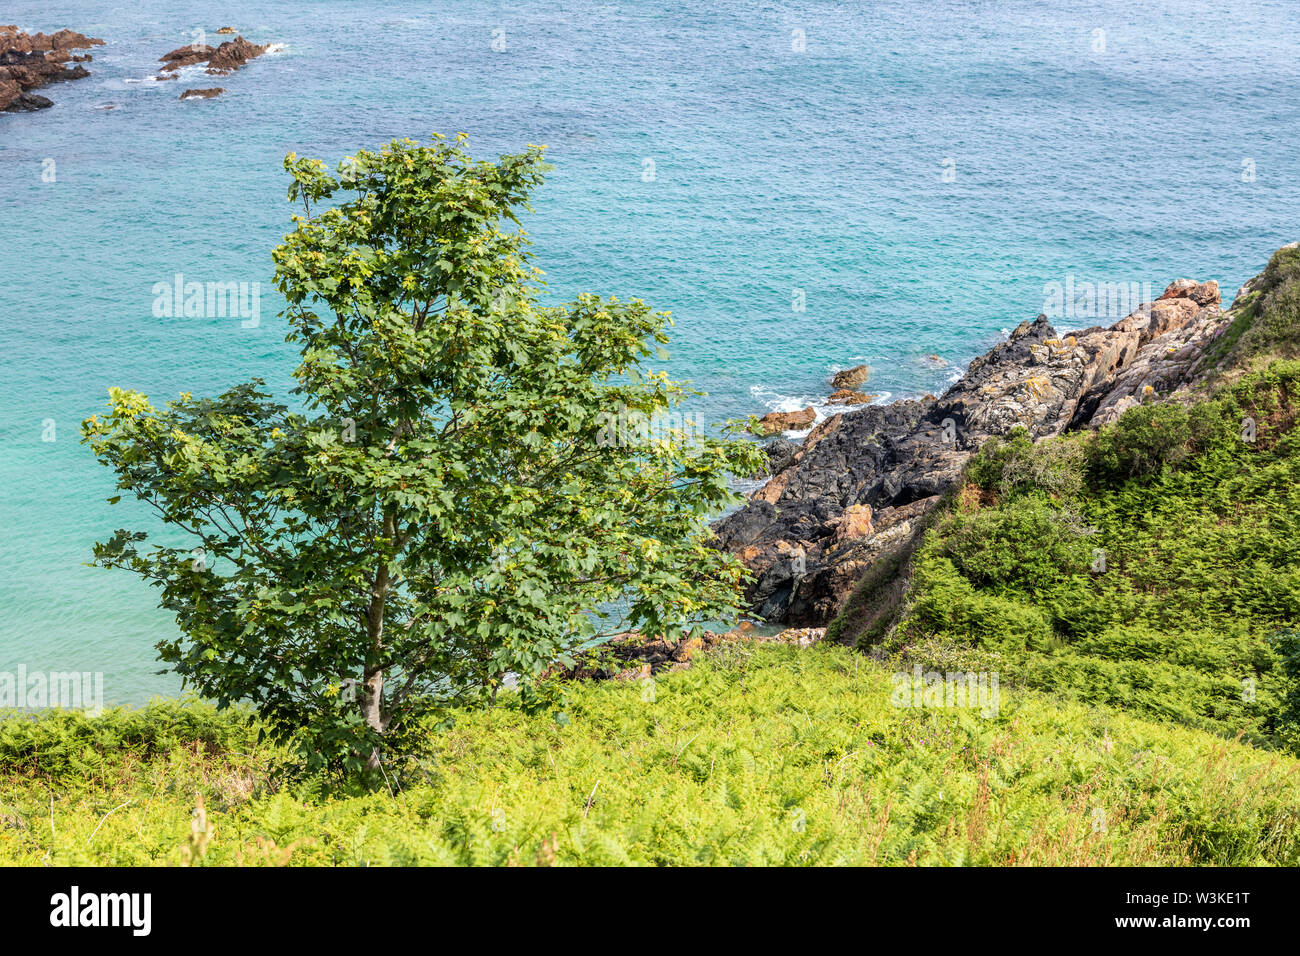 Looking down from the coastal path onto a tree on the cliffs above Petit Bot Bay on the beautiful rugged south coast of Guernsey, Channel Islands UK - Stock Image